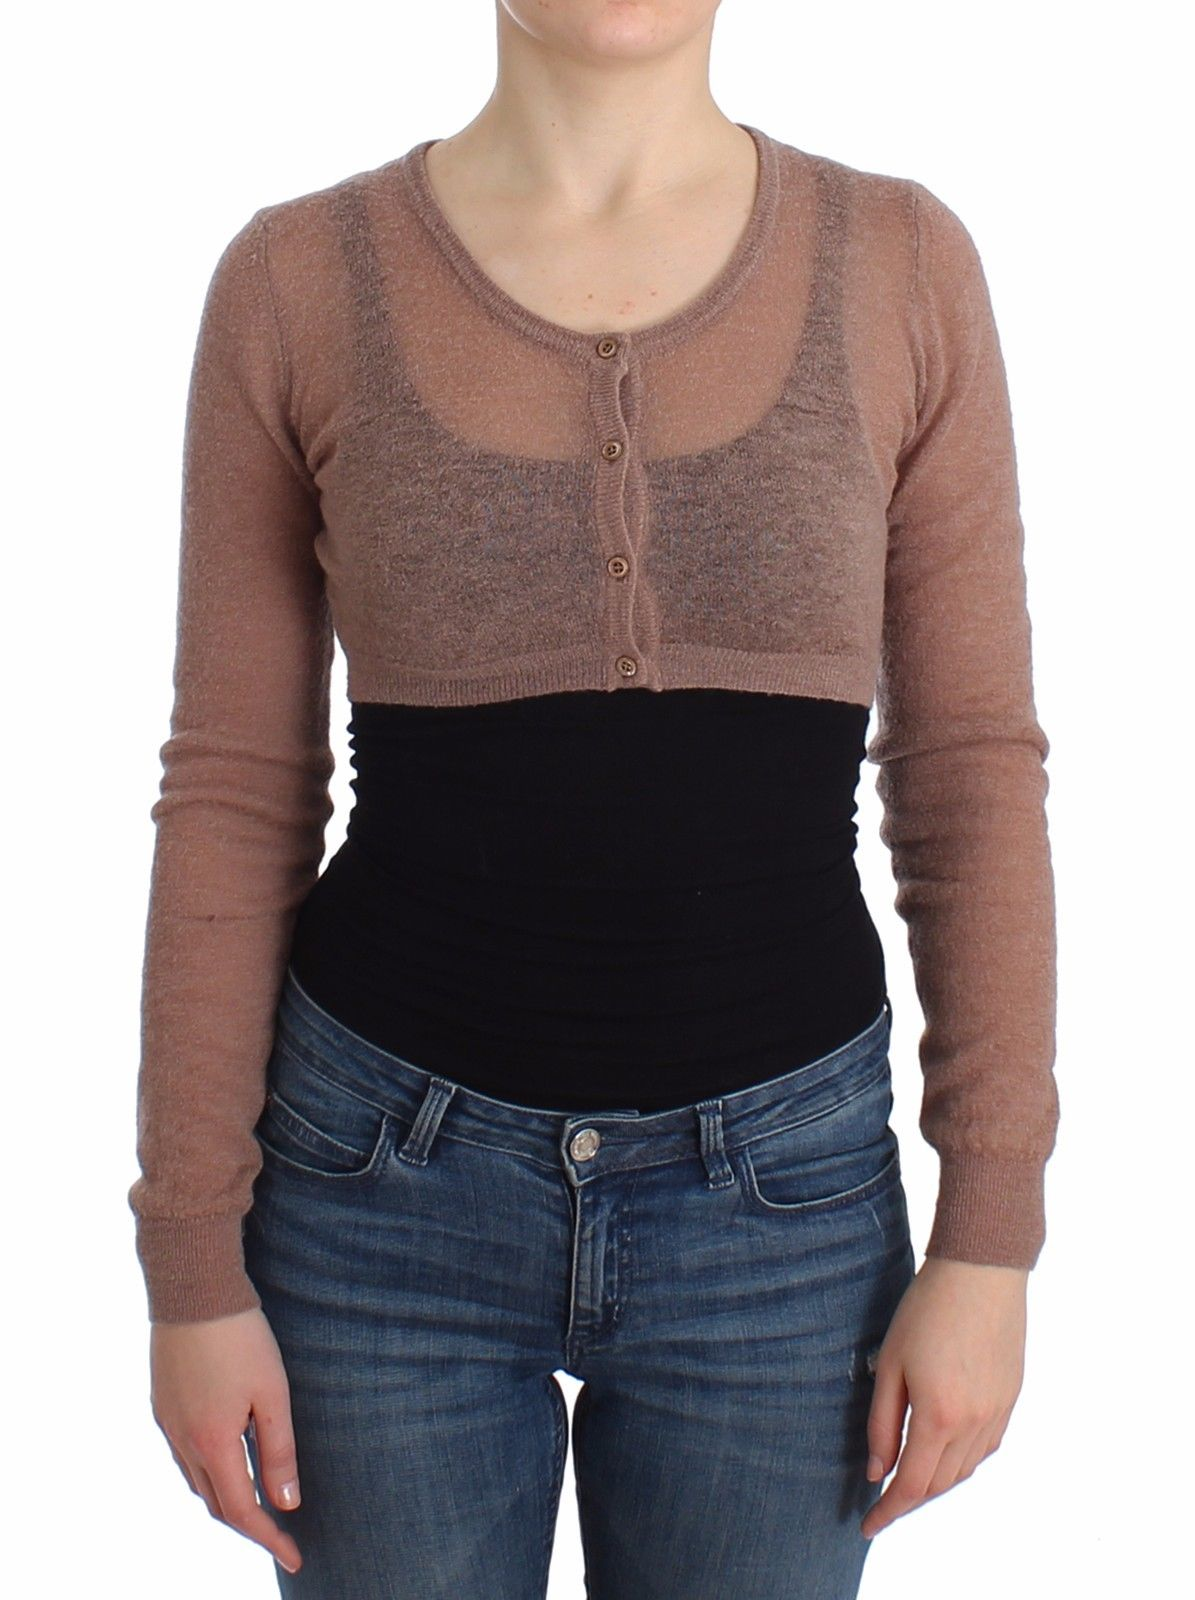 Ermanno Scervino Women's Knit Cropped Sweater Brown SIG11870 - IT42 | S